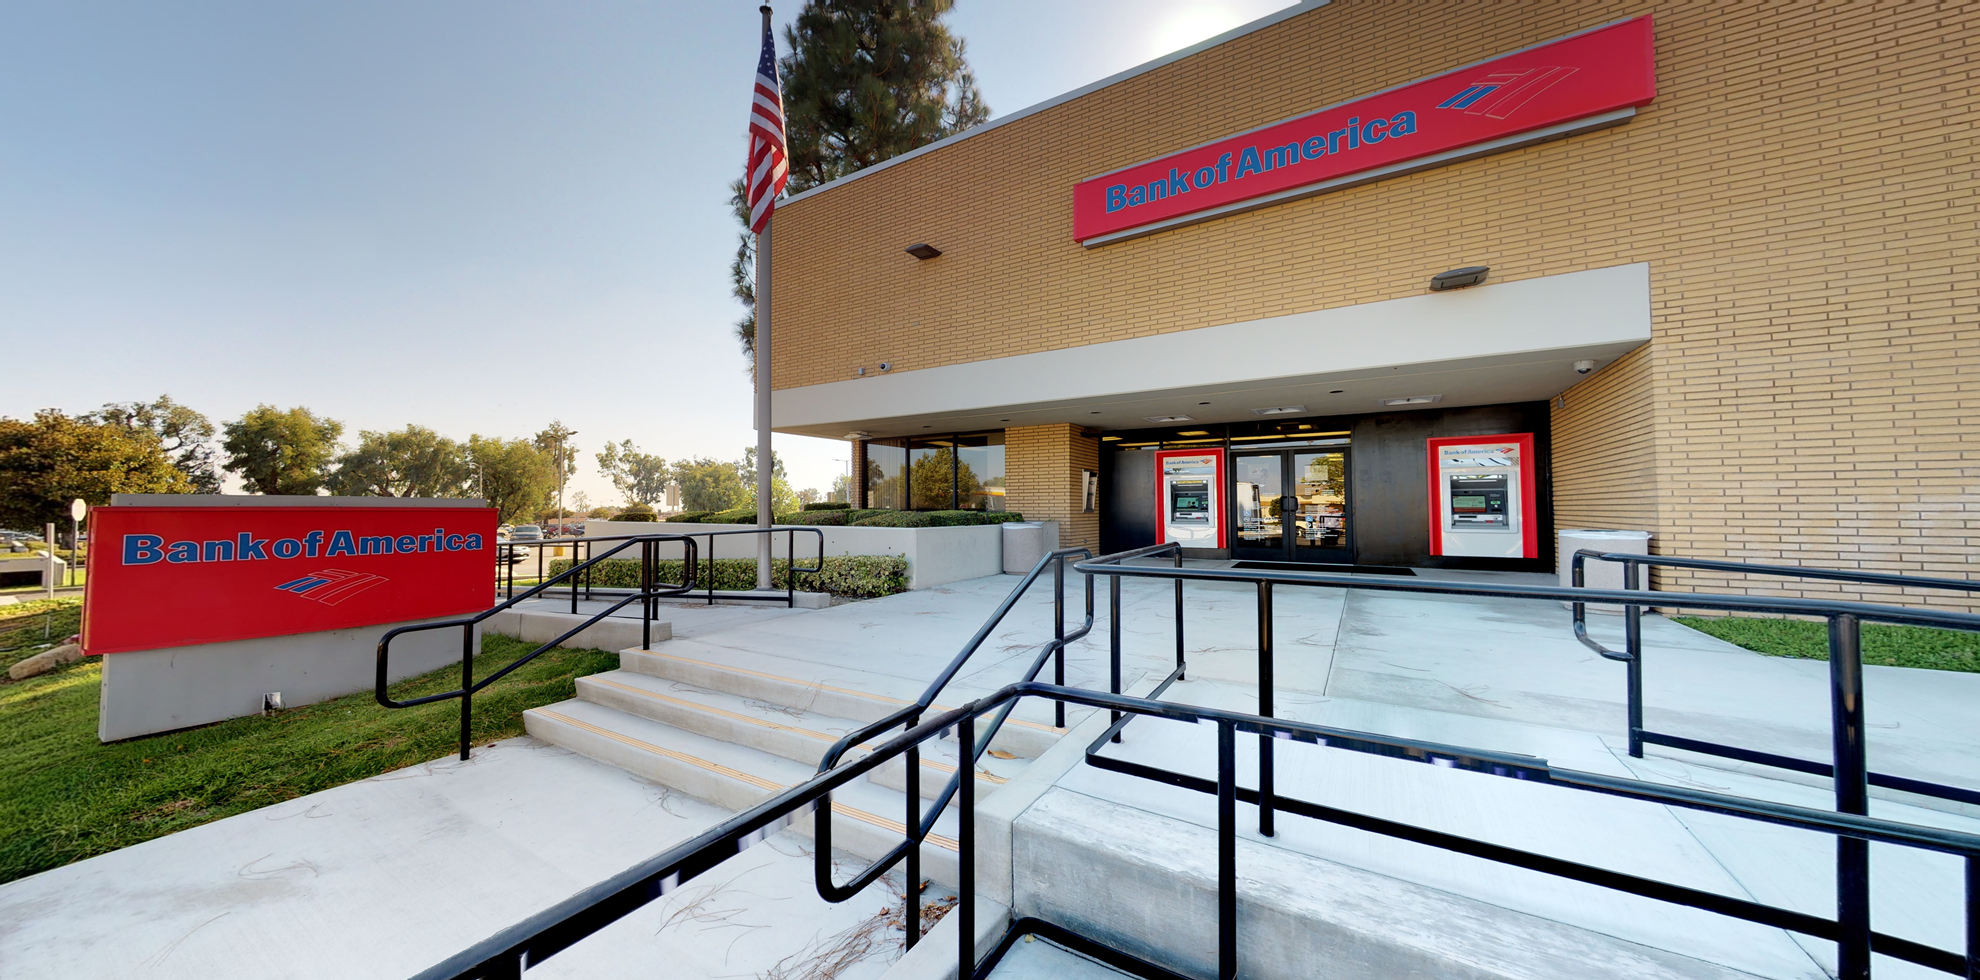 Bank of America financial center with drive-thru ATM | 1211 W Foothill Blvd, Upland, CA 91786